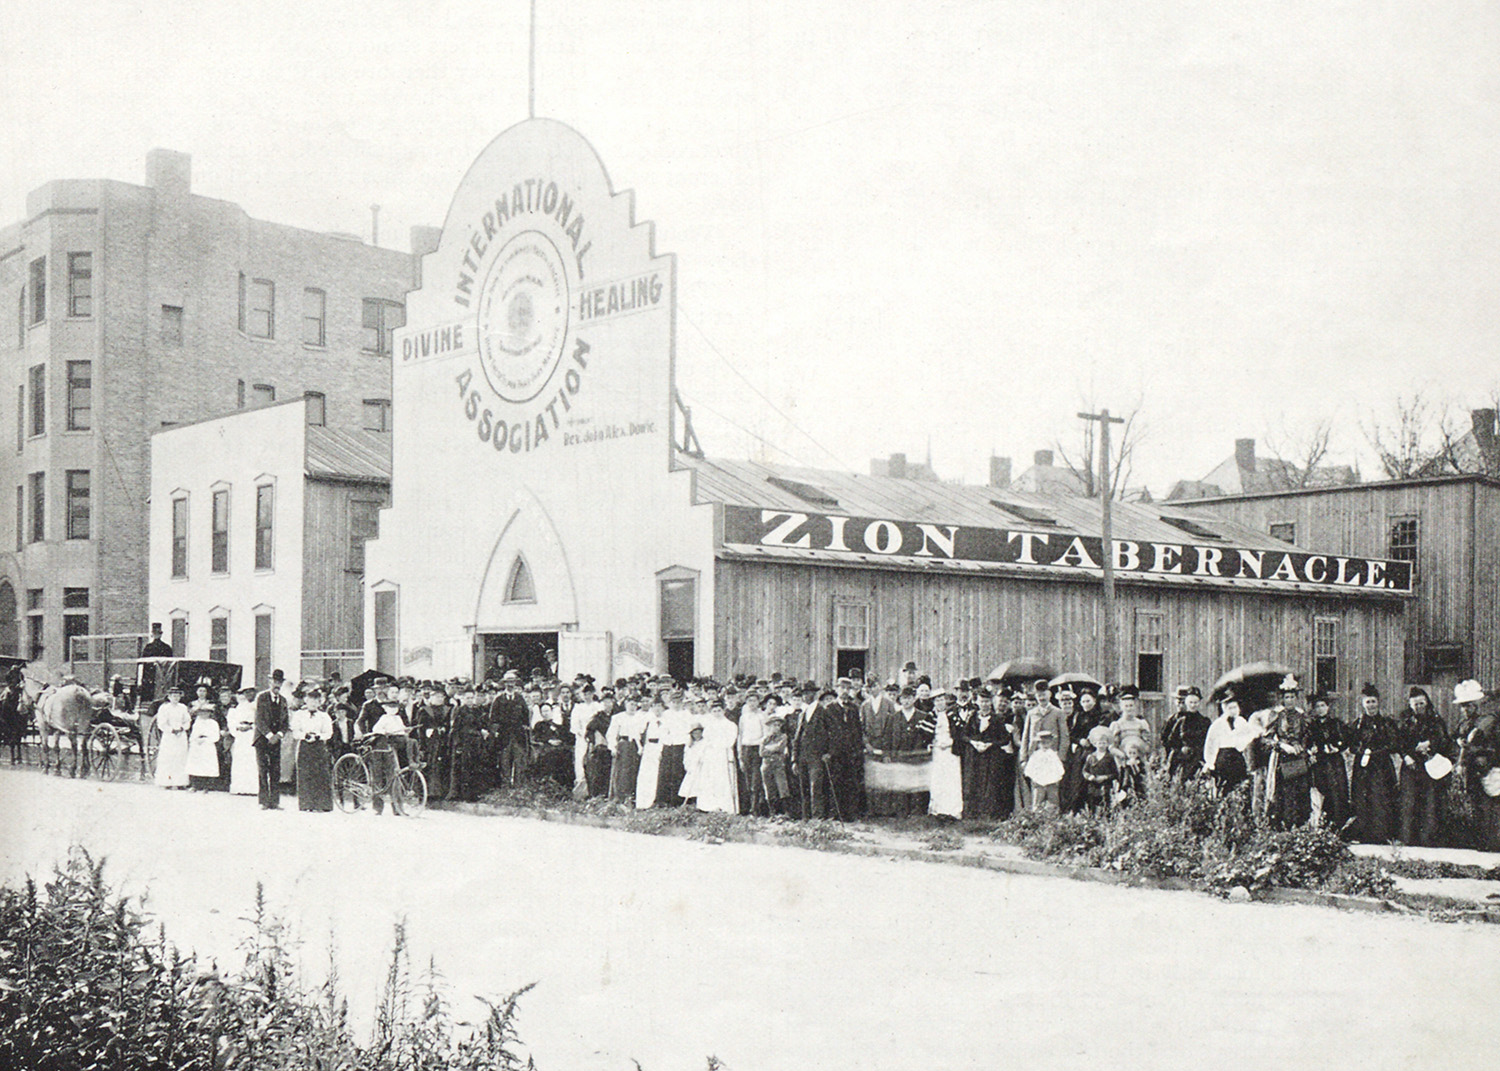 Zion Tabernacle, 31 August 1894, courtesy Flower Pentecostal Heritage Centre, Springfield, Missouri.